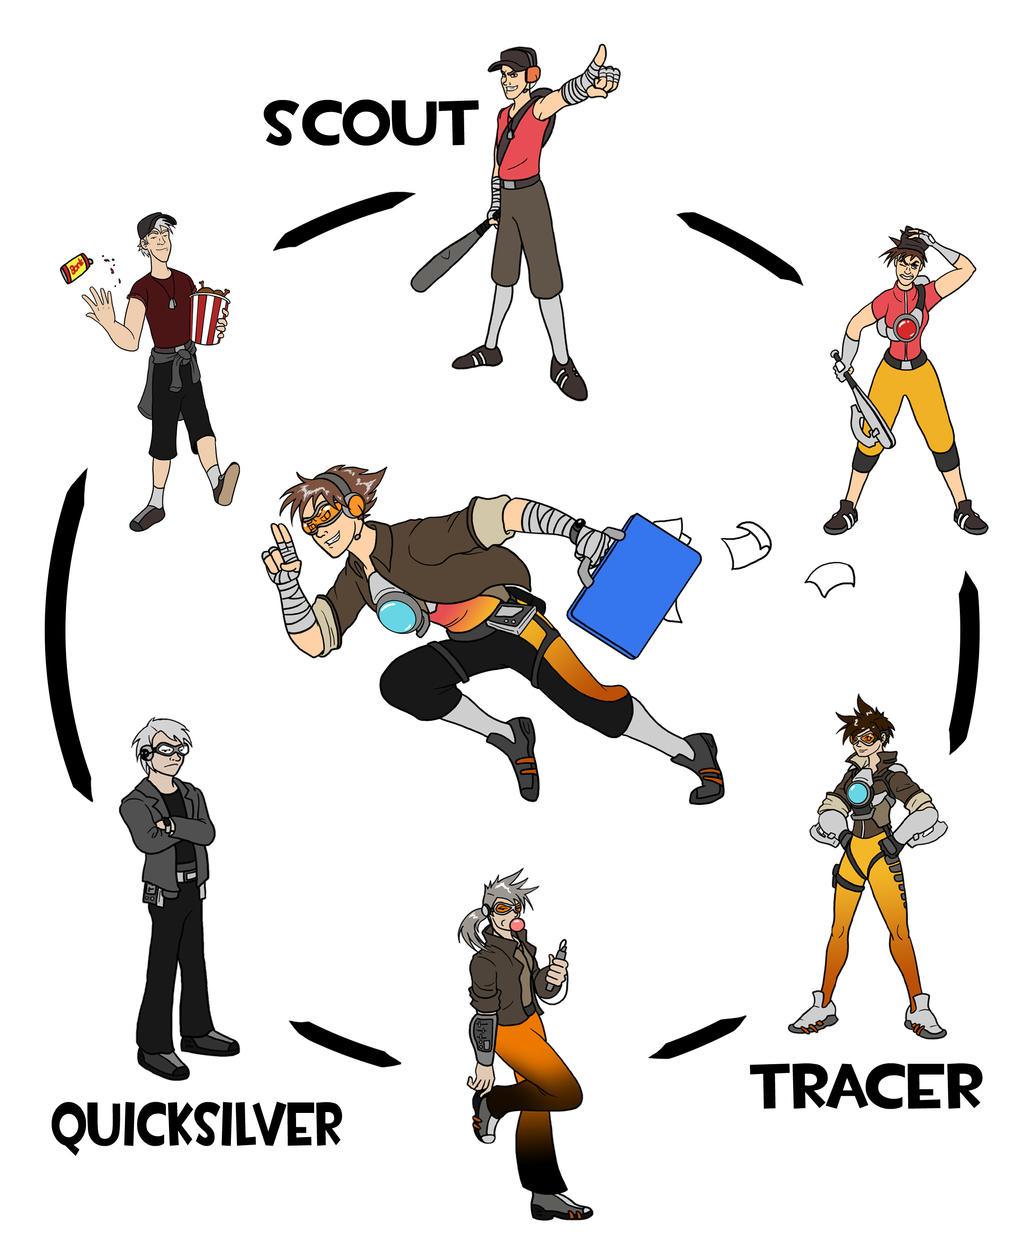 Runners Hexafusion by The-Other-Owl on DeviantArt